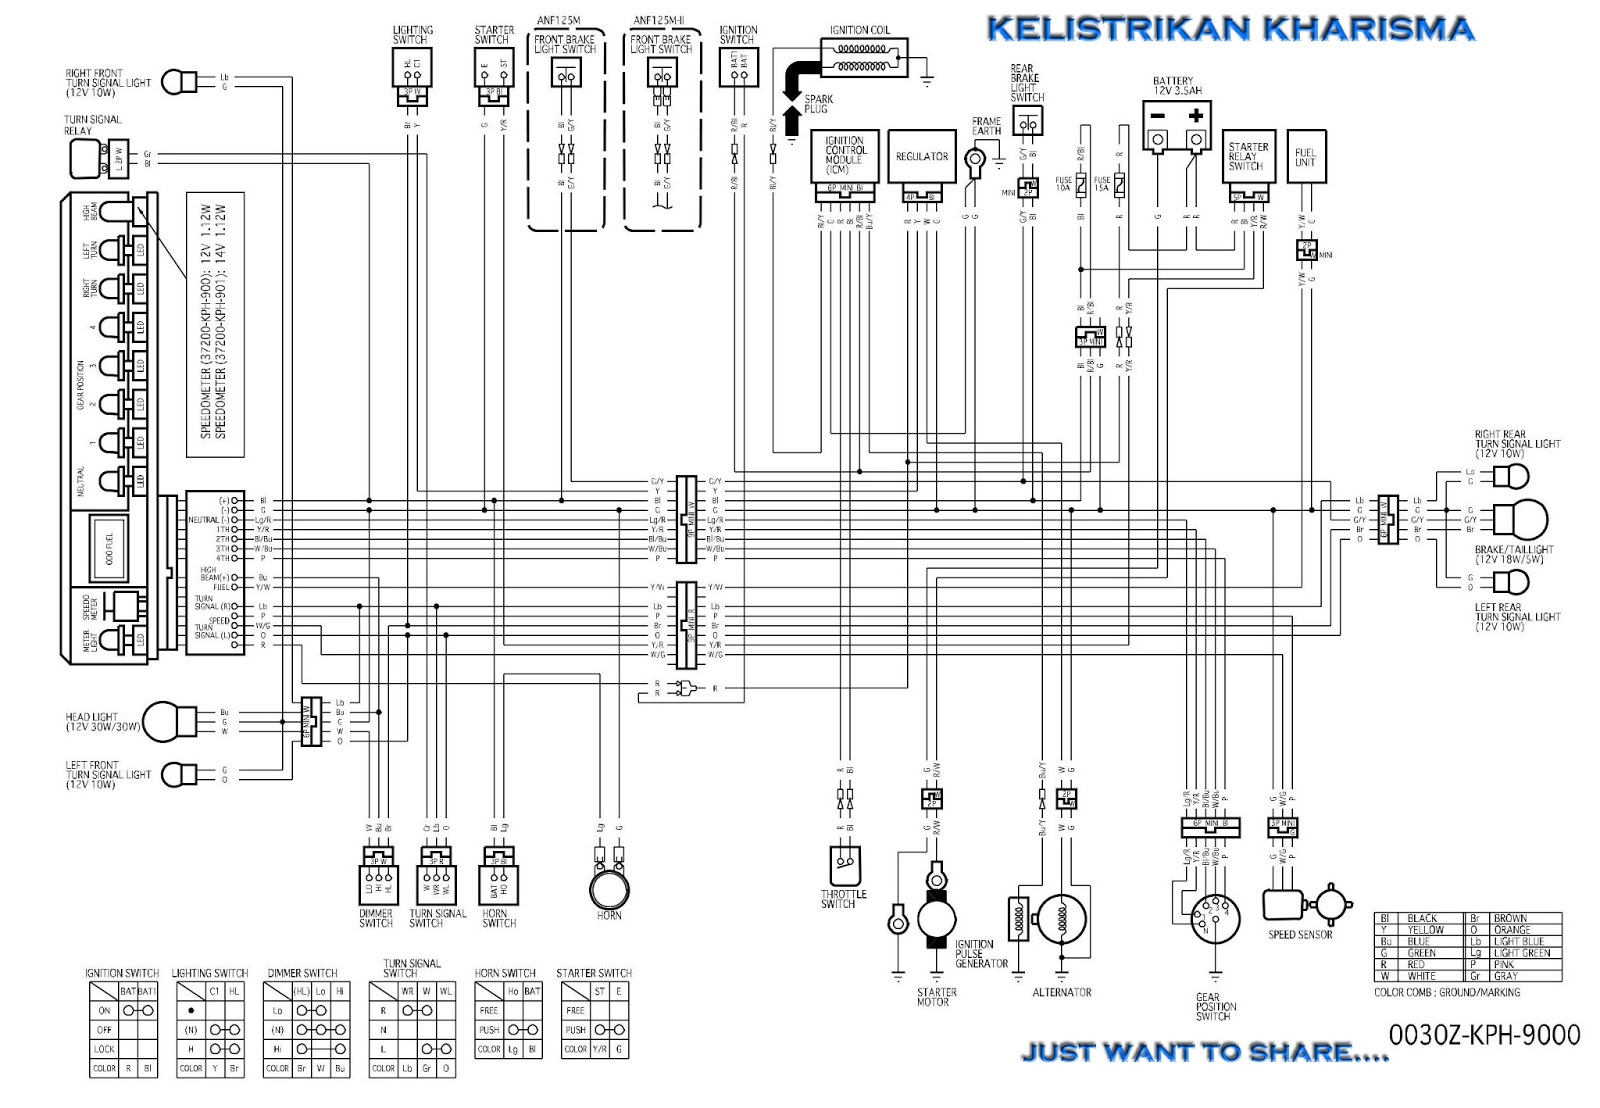 medium resolution of diagram kelistrikan honda kharisma bacabisa wiring diagram honda karisma pdf bagi yang lagi mencari diagram kelistrikan